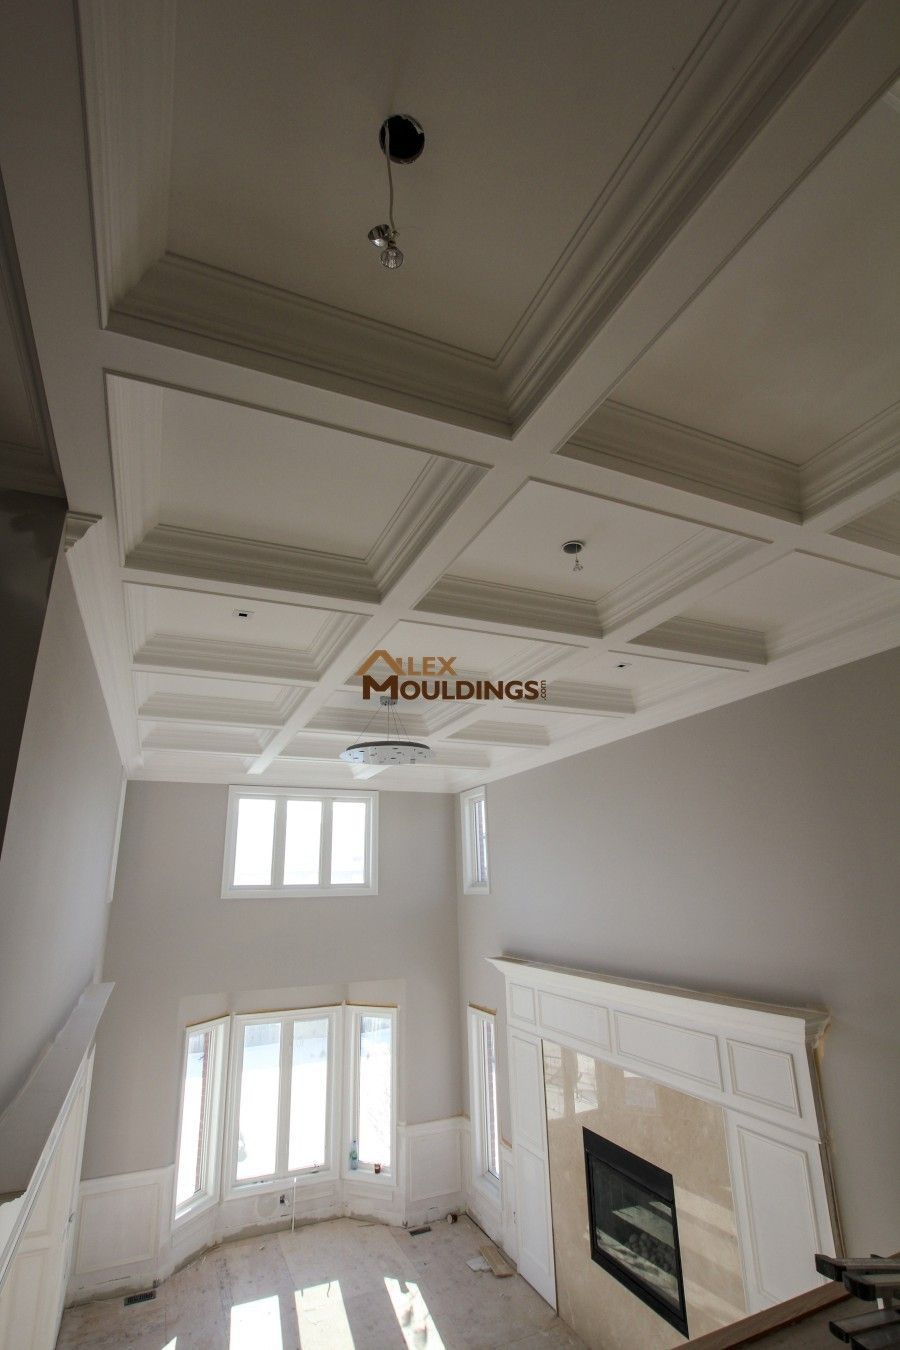 Hallway Waffle Ceiling Coffered And Waffle Ceilings Pinterest - Cornice crown moulding toronto wainscoting coffered ceiling